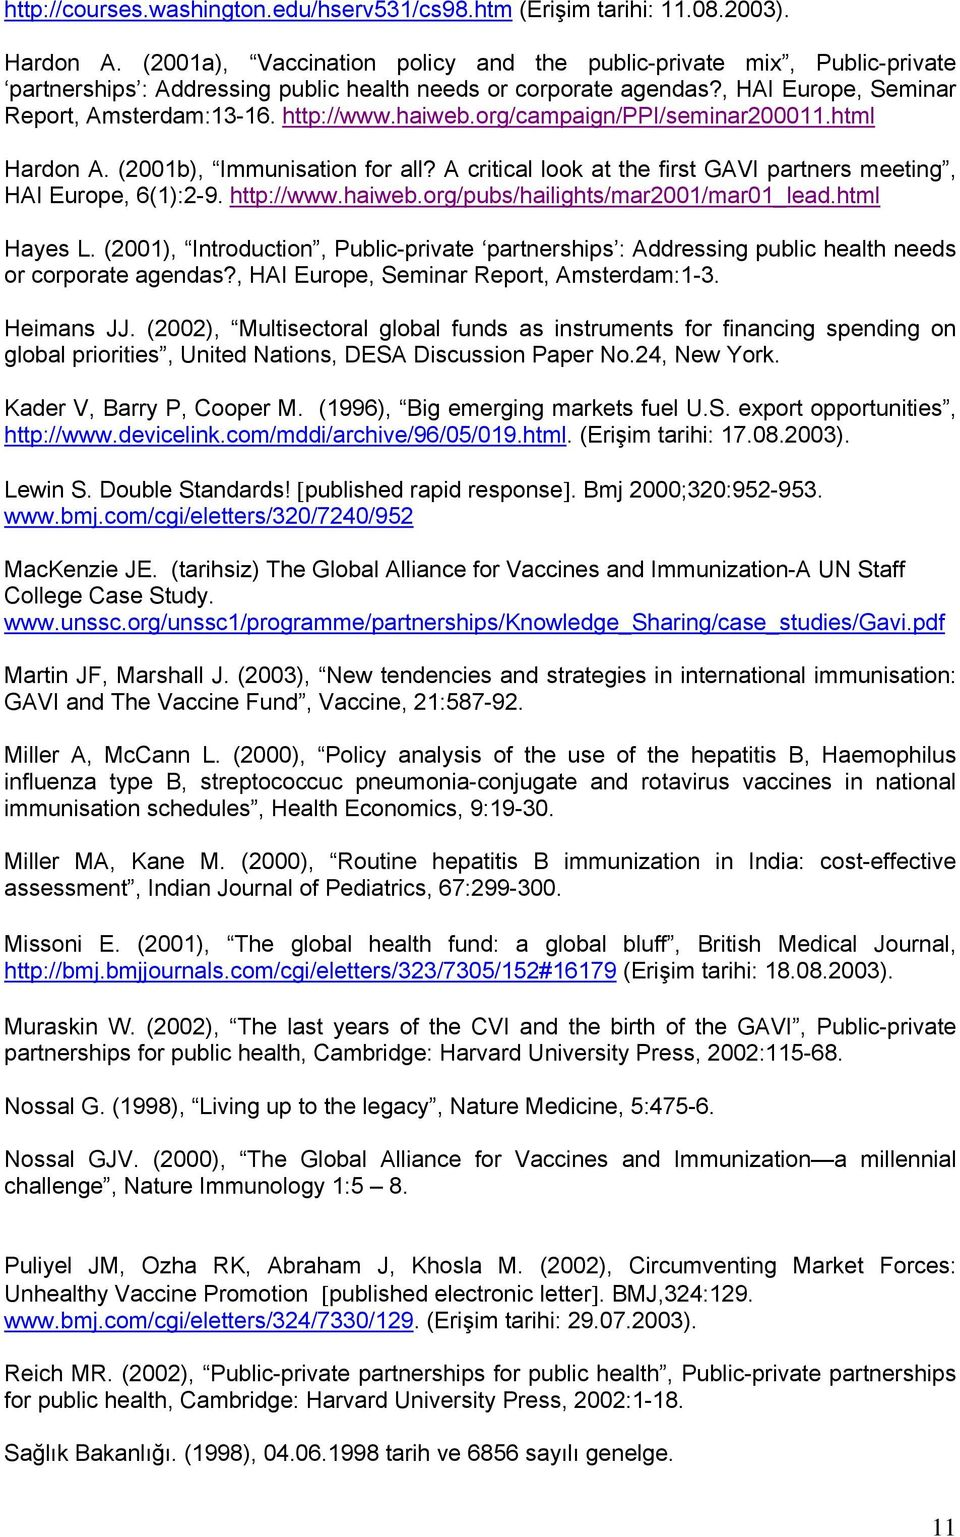 haiweb.org/campaign/ppi/seminar200011.html Hardon A. (2001b), Immunisation for all? A critical look at the first GAVI partners meeting, HAI Europe, 6(1):2-9. http://www.haiweb.org/pubs/hailights/mar2001/mar01_lead.